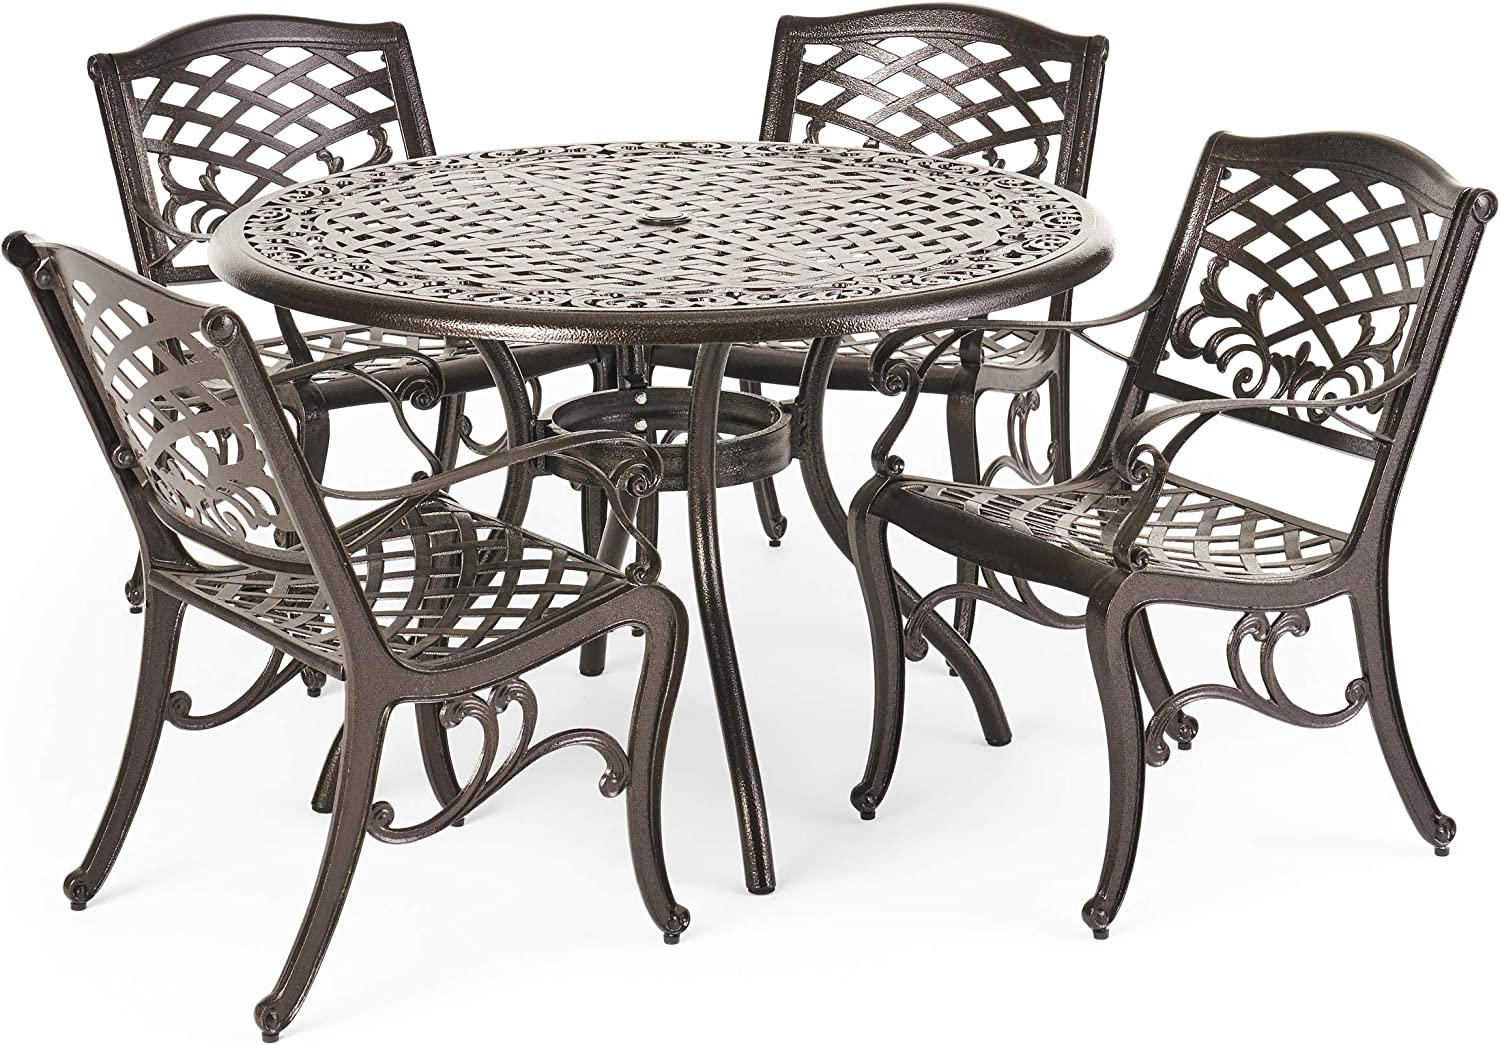 Christopher Knight Home Hallandale Outdoor Cast Aluminum Dining Set For Patio Or Deck 5 Pcs Set Black Garden Outdoor